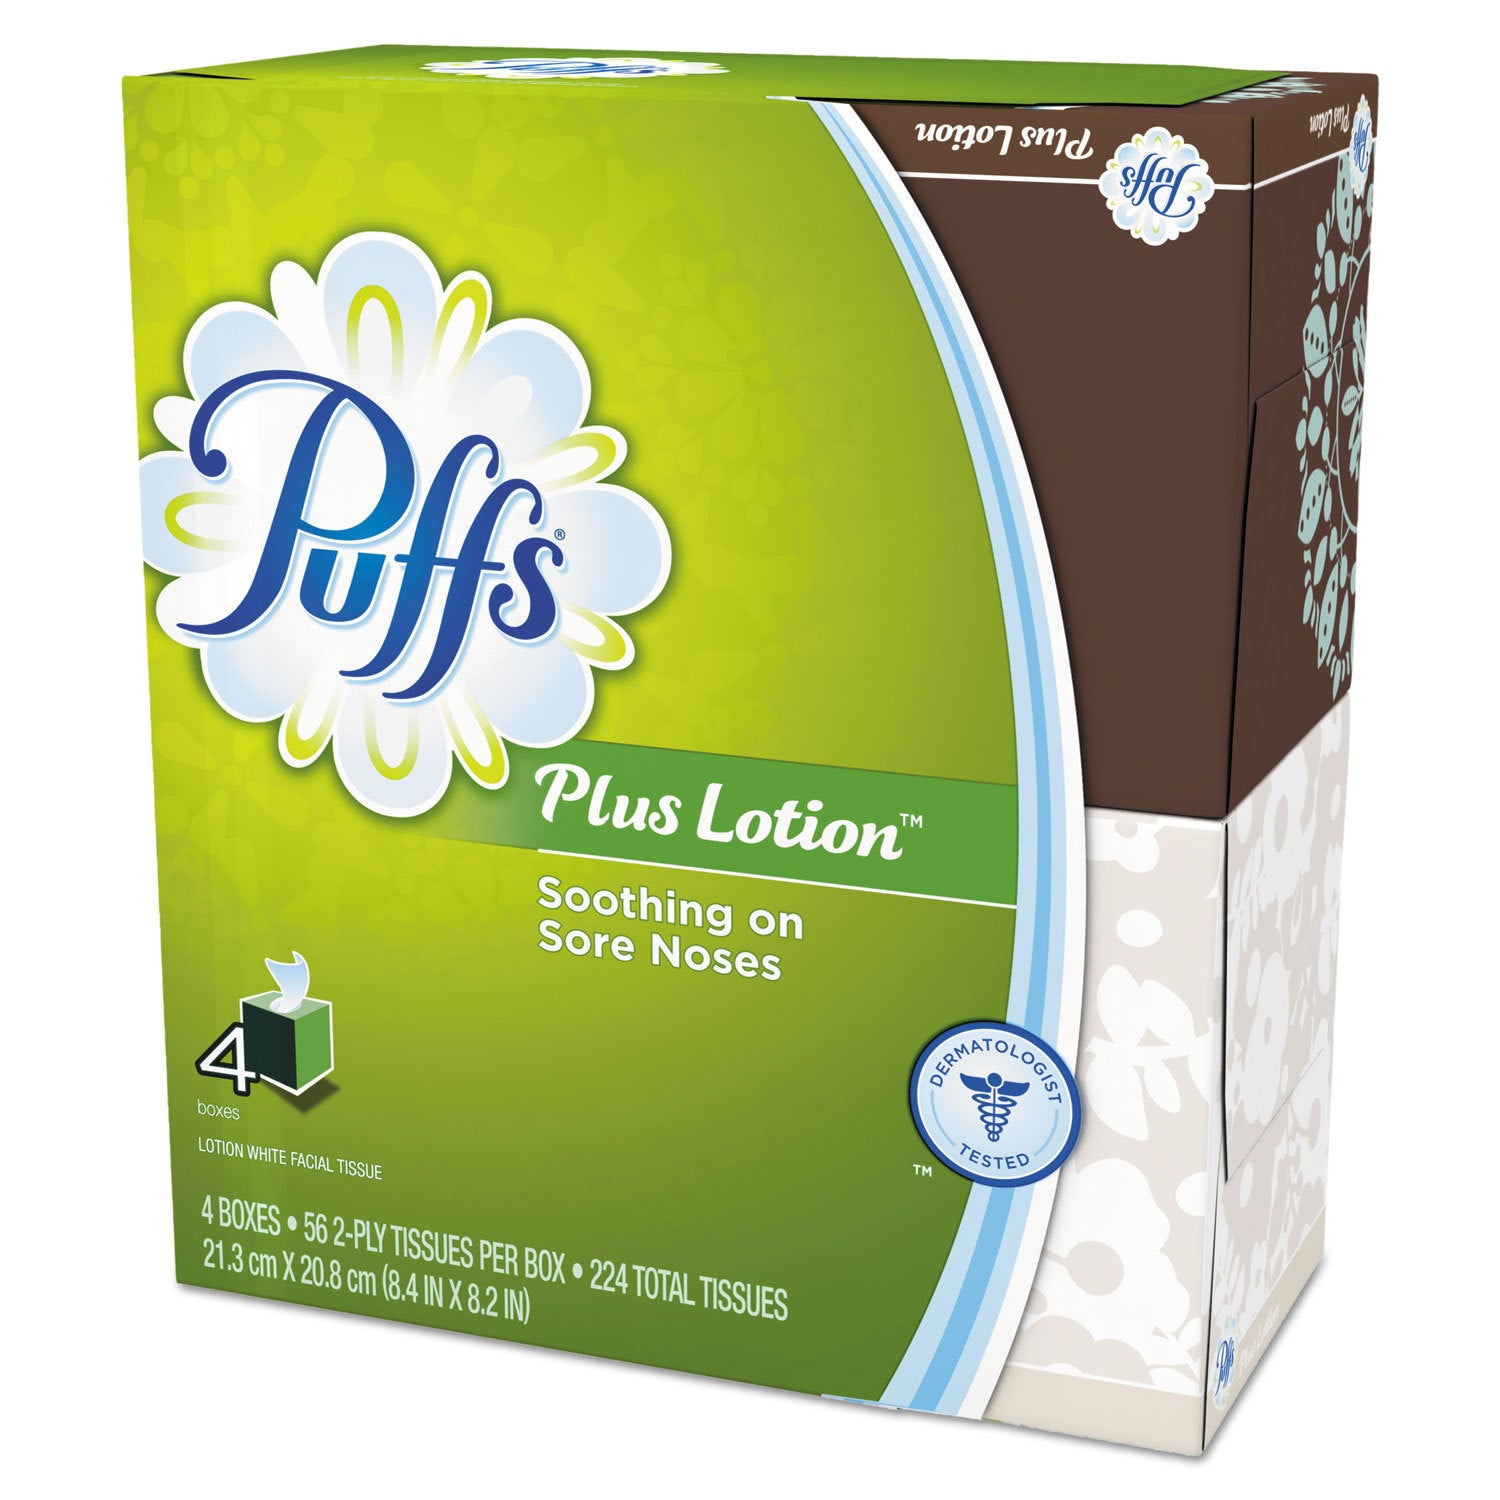 Puffs Plus Lotion Facial Tissue White 1-Ply 8 1/5 inches ...